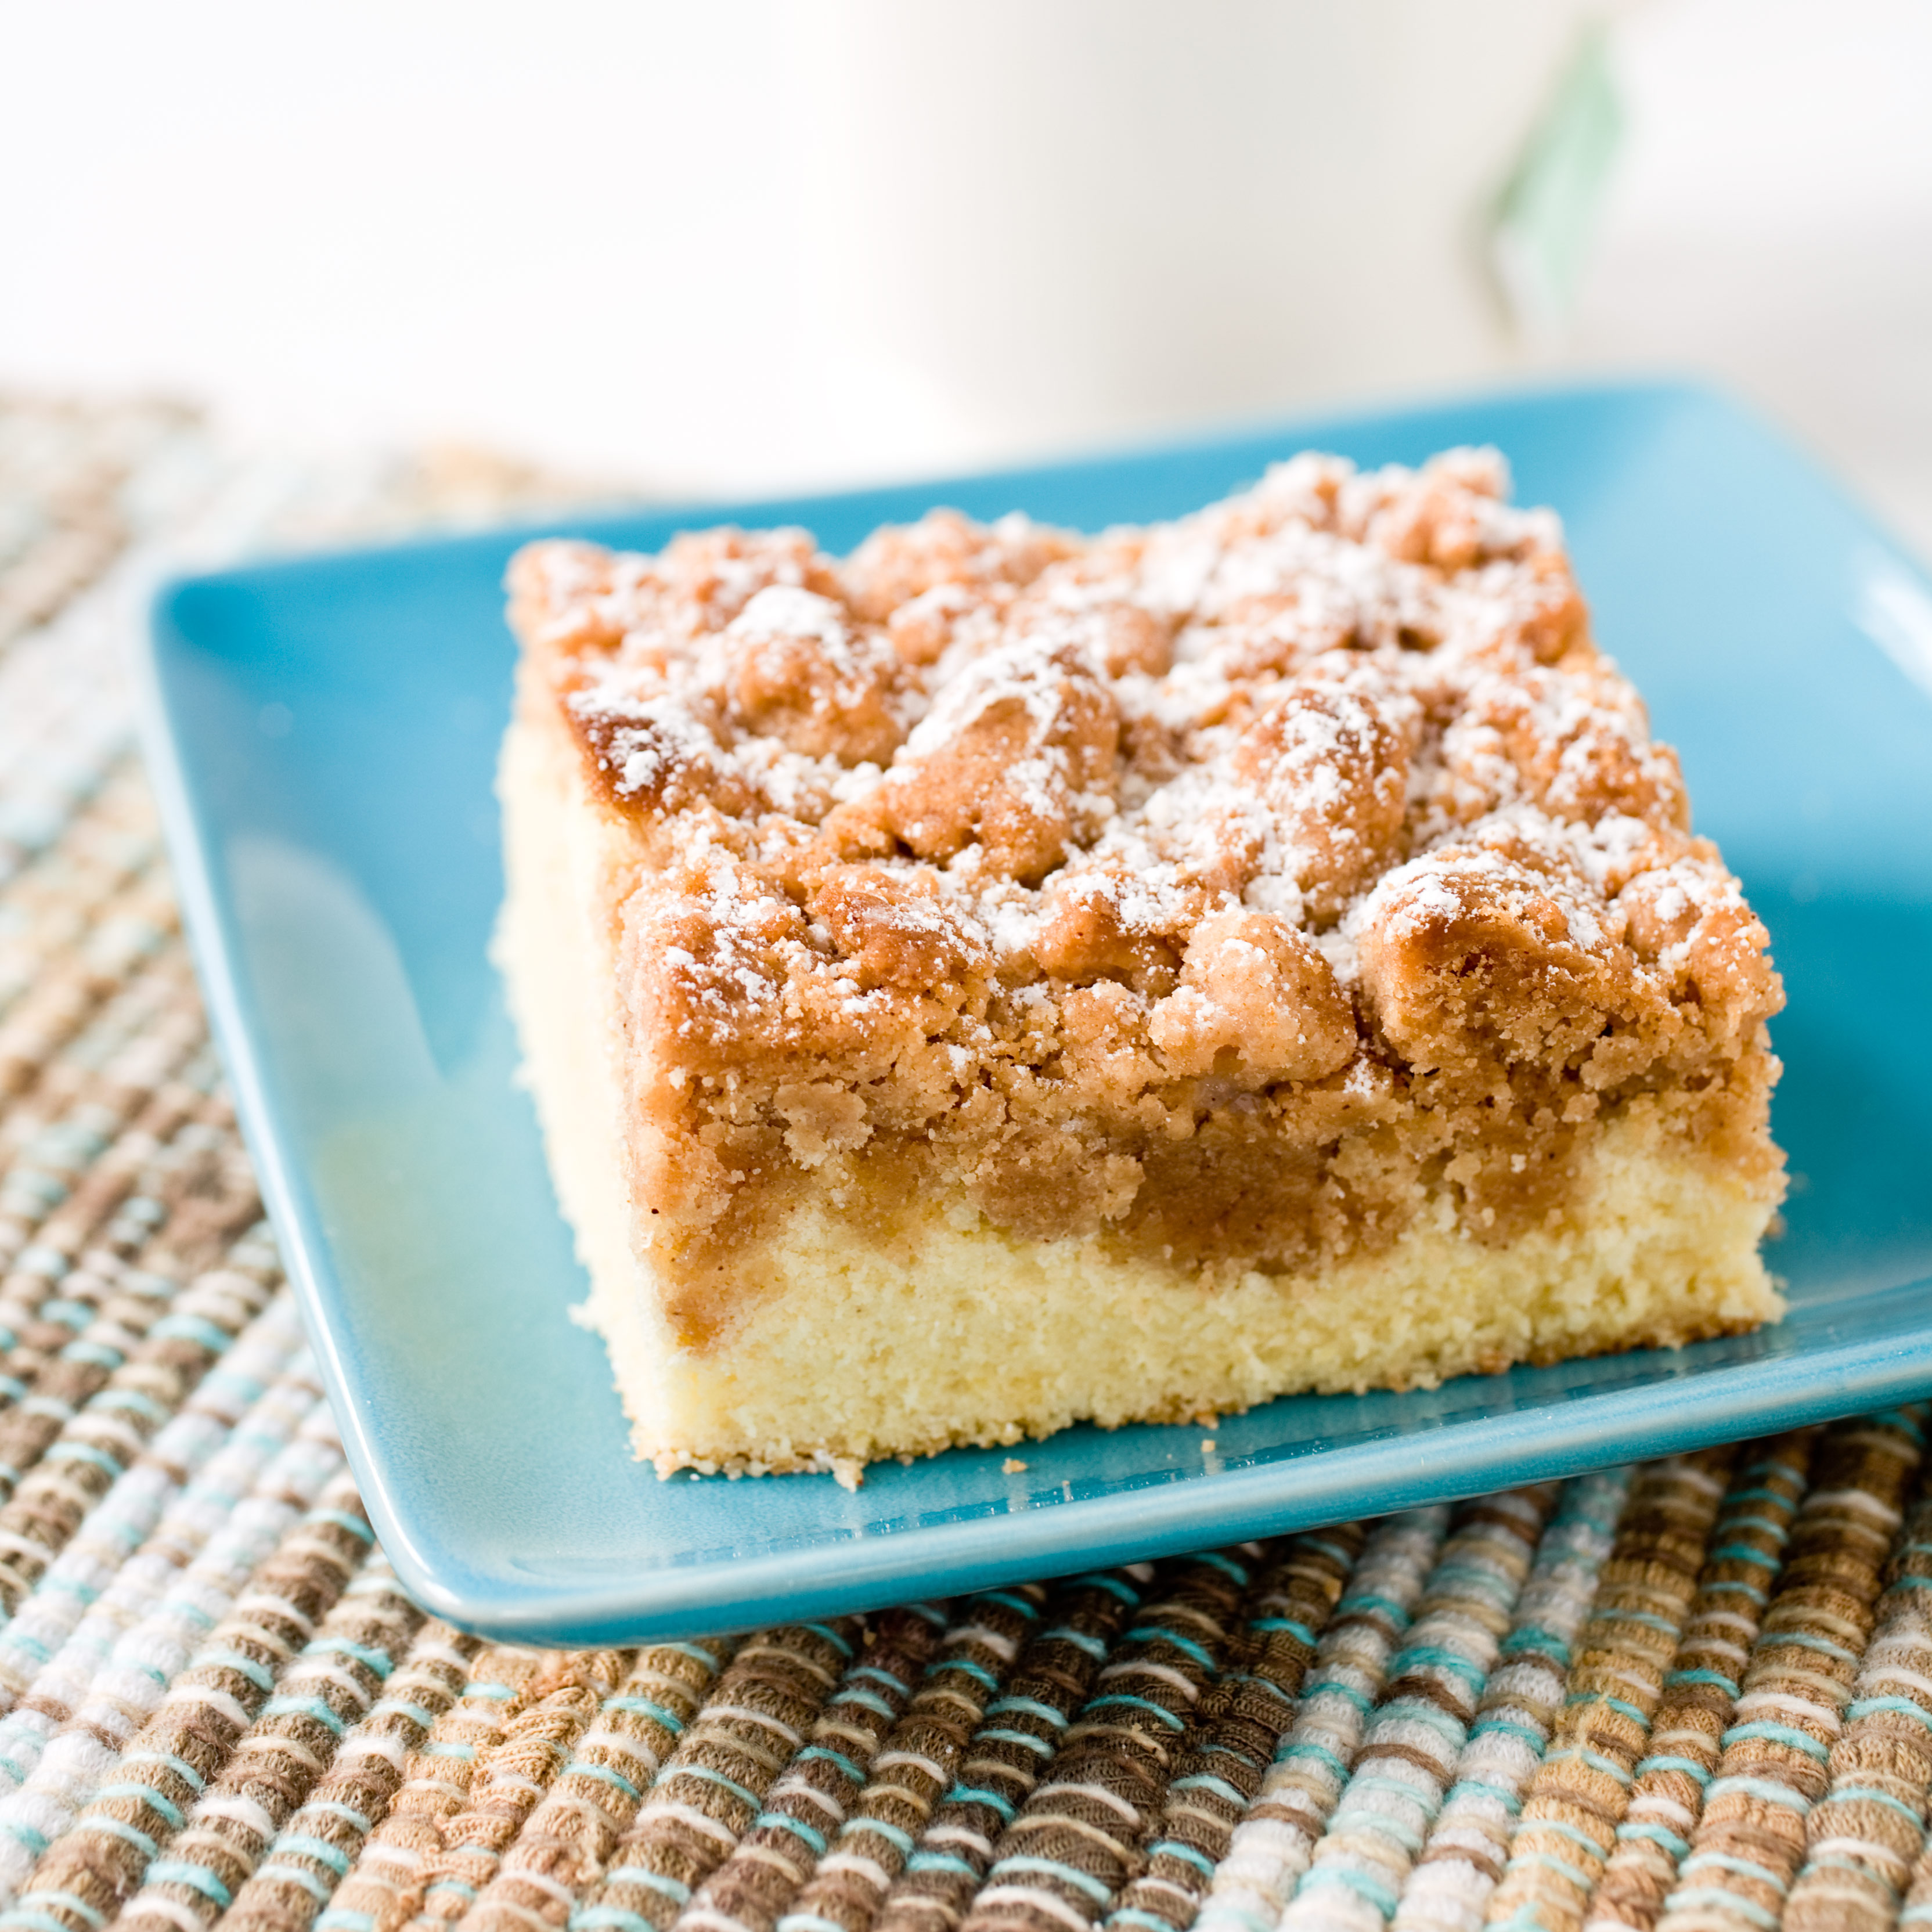 New York-Style Crumb Cake Recipe - Cook's Illustrated